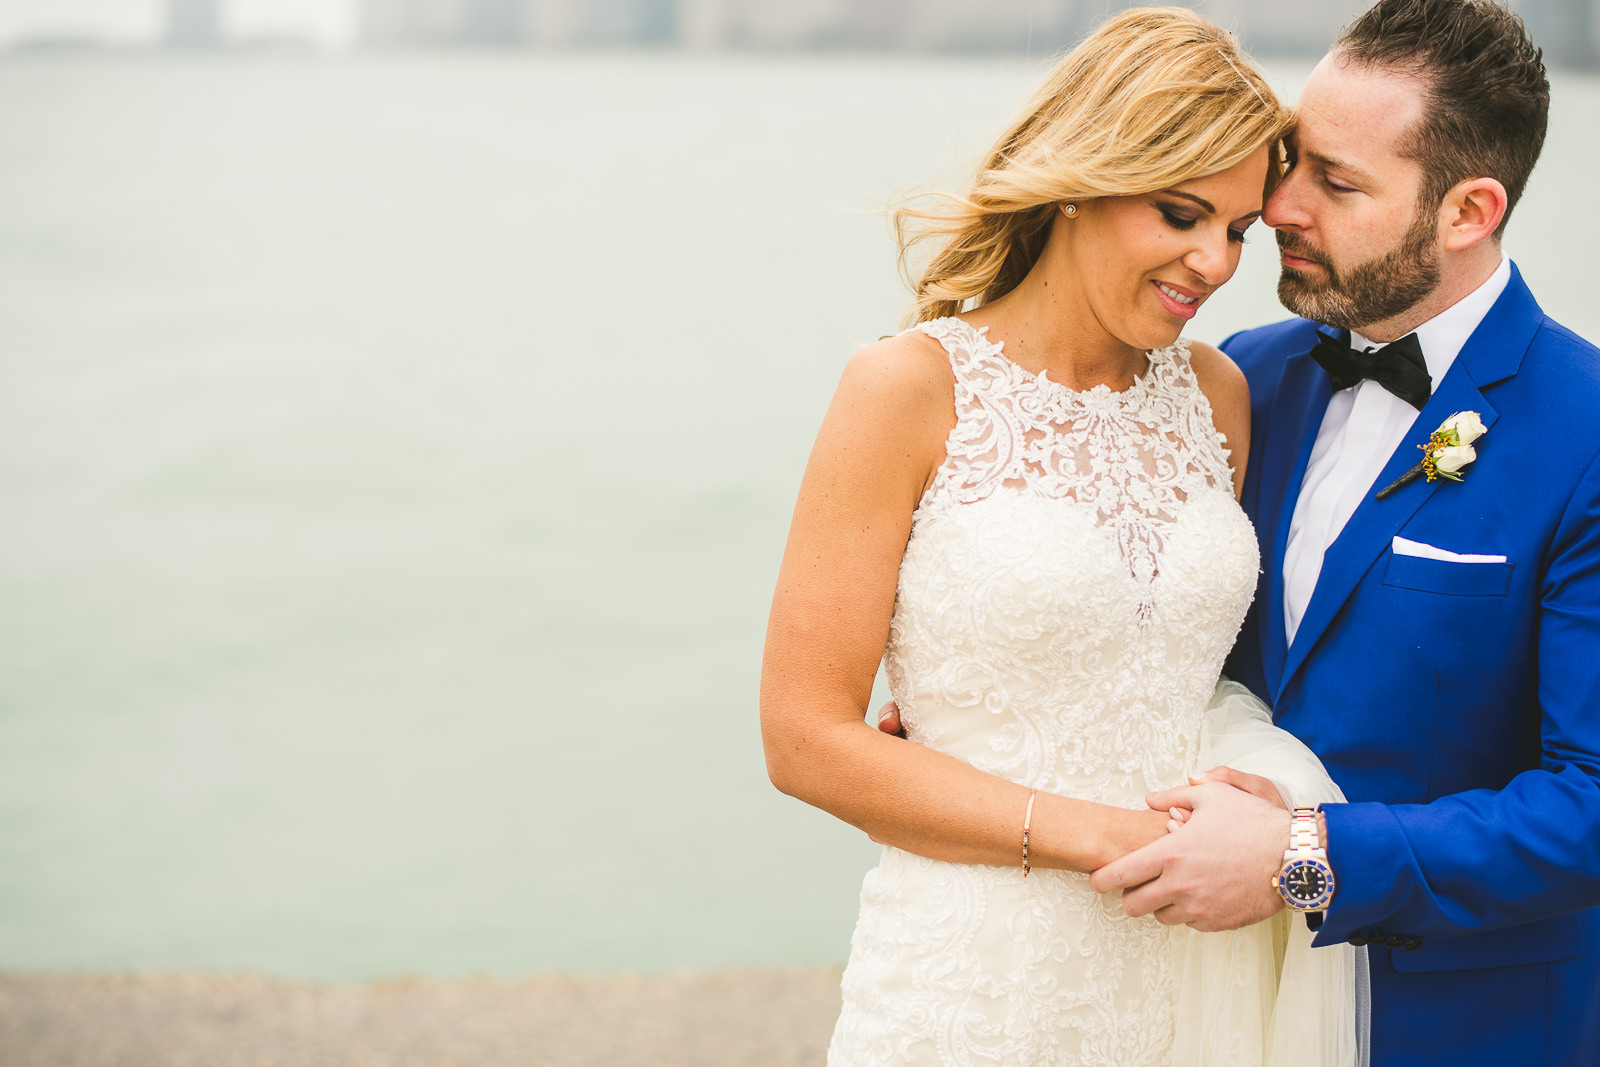 24 chicago wedding photography - Chicago Wedding Photography at Gallery 1028 // Courtnie + David